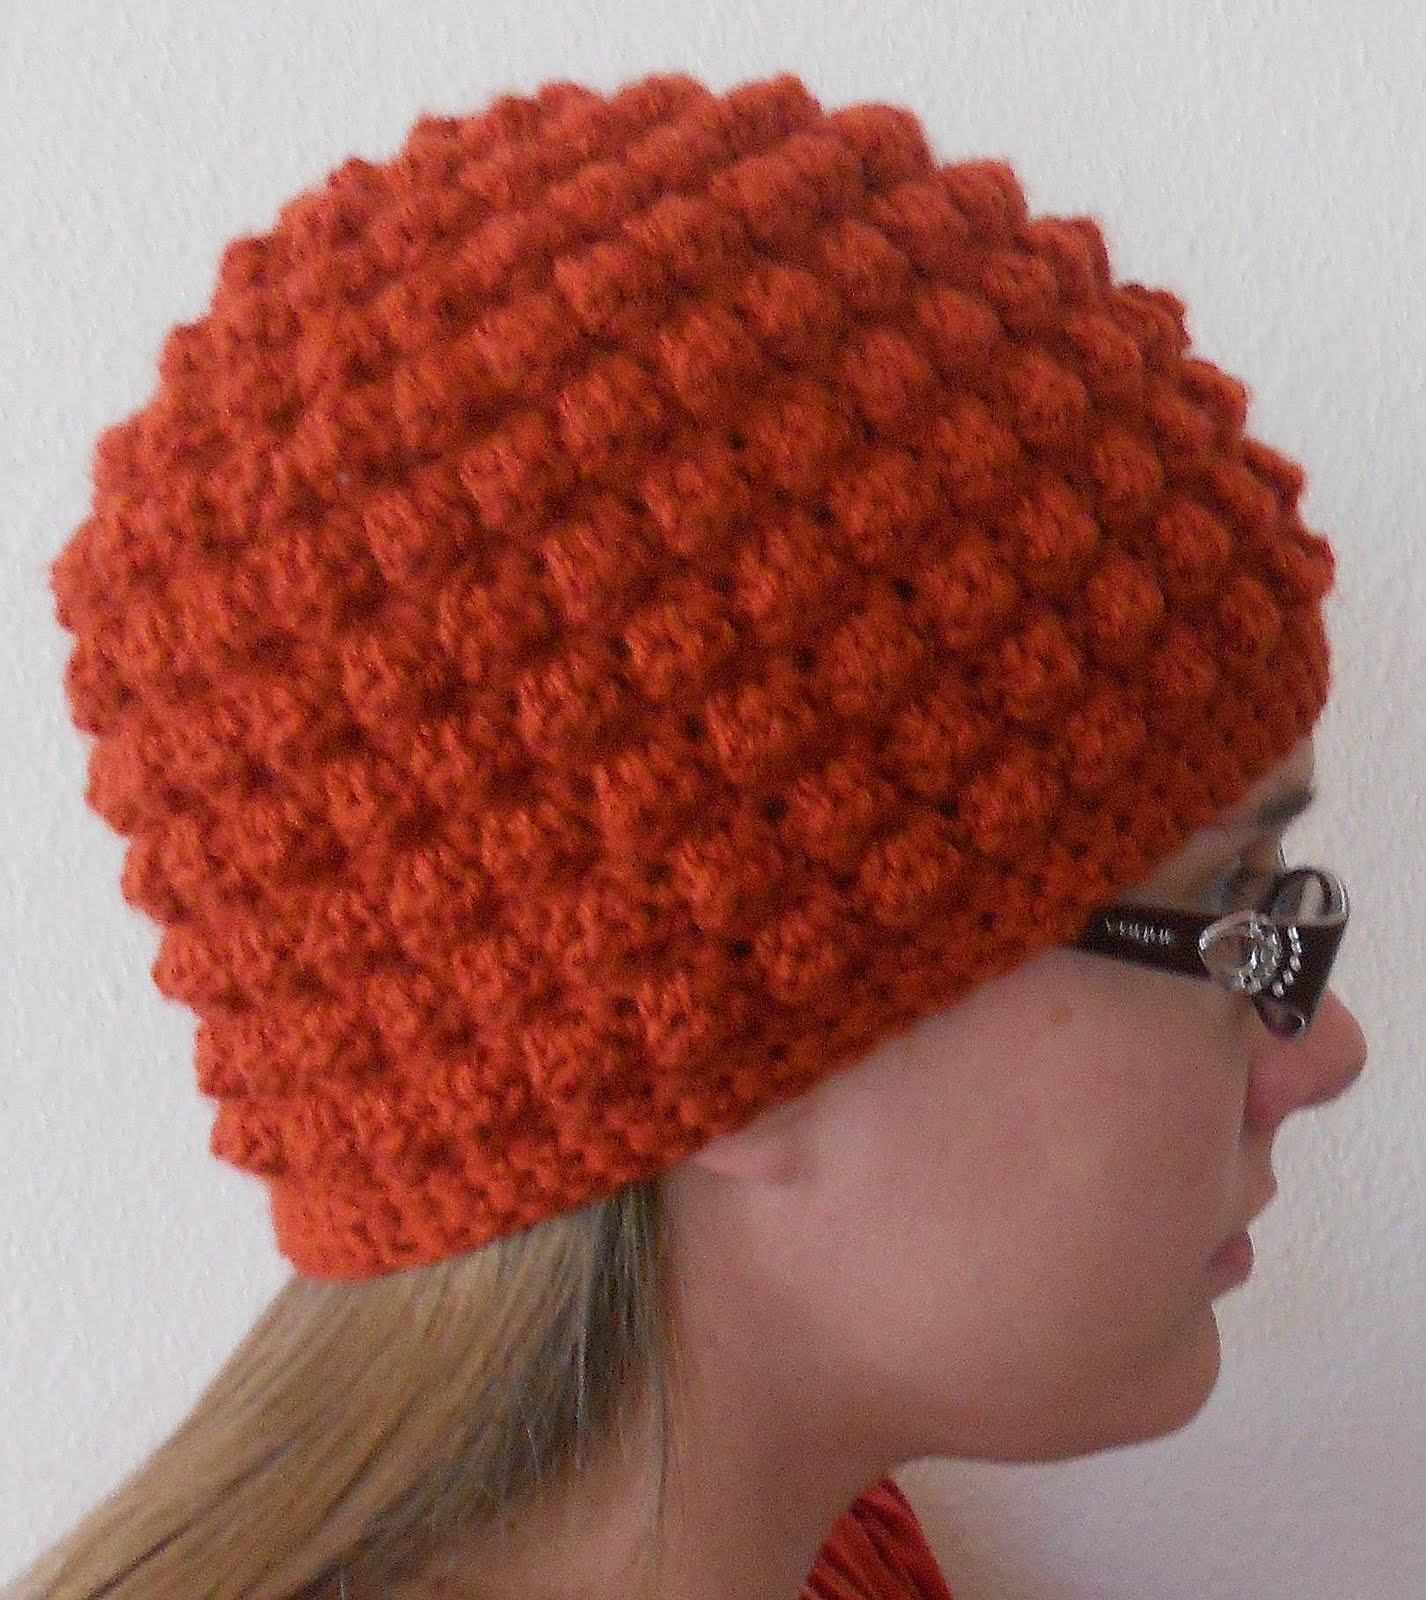 Inspirational Crafty Woman Creations Free Adult Size Bumpy Bobbles Adult Crochet Hat Of Contemporary 46 Pics Adult Crochet Hat